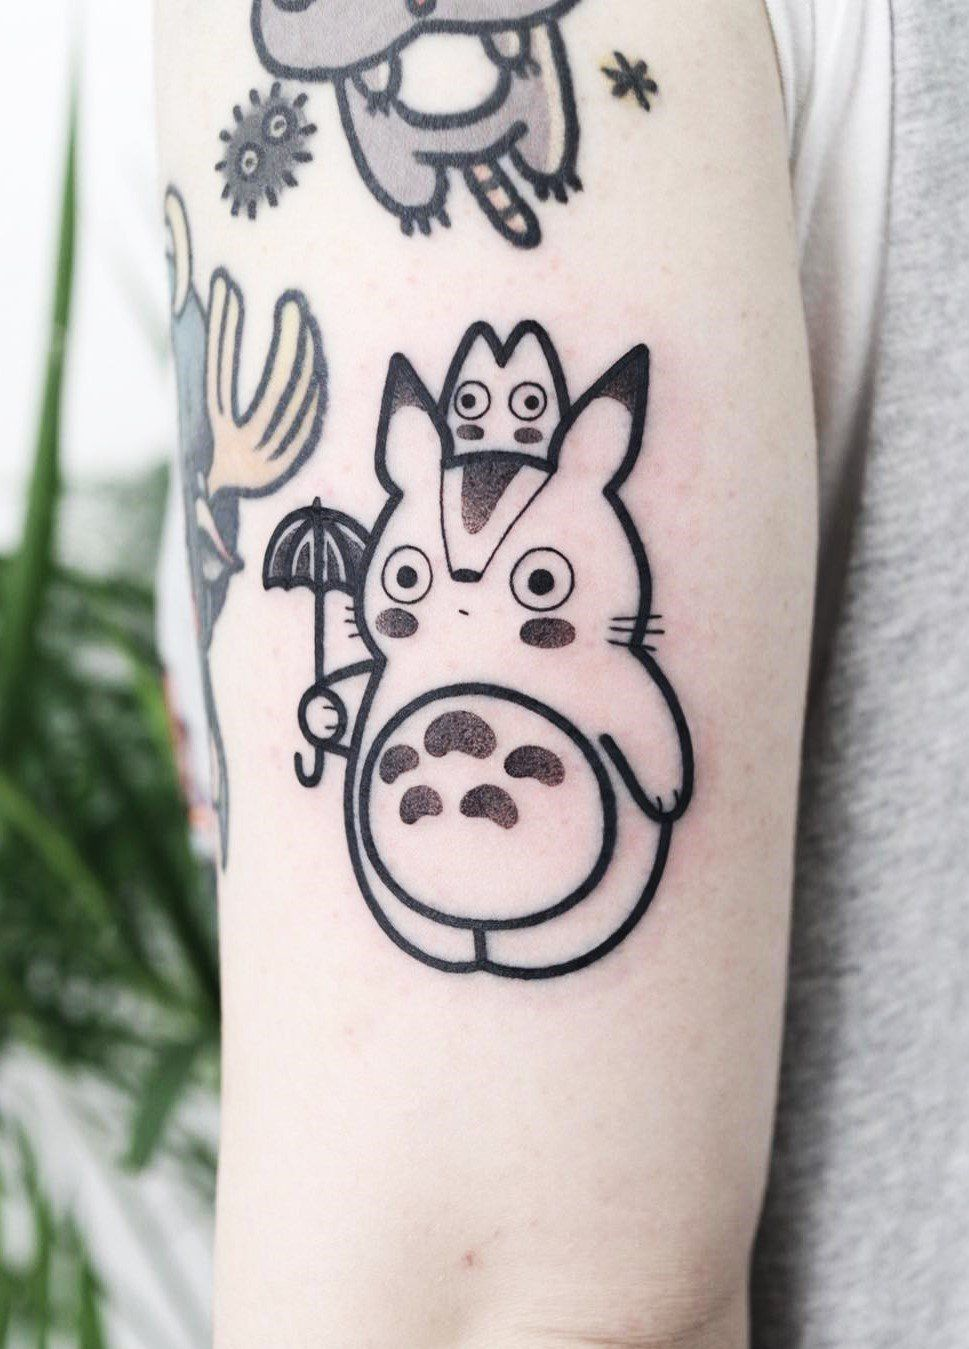 f1719e5f1 Check out these cute pop culture tattoos! Featuring anime tattoos such as  Princess Mononoke, My Neighbor Totoro, Howl's Moving Castle & Spirited Away.